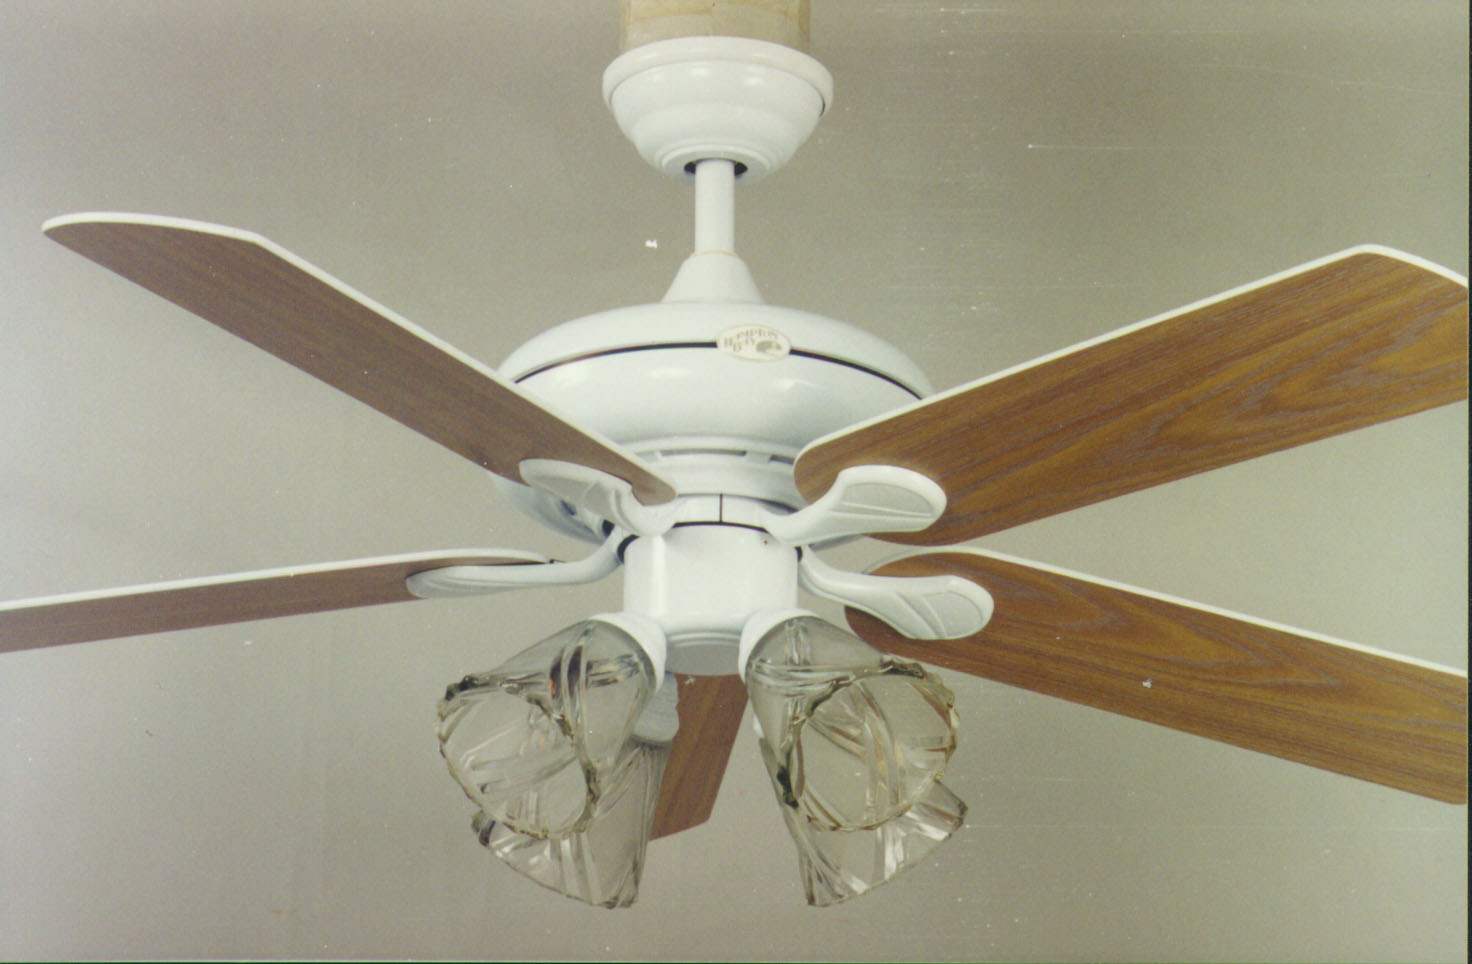 Hampton Bay Ceiling Fan Clear Blades - Ceiling Fans Ideas on